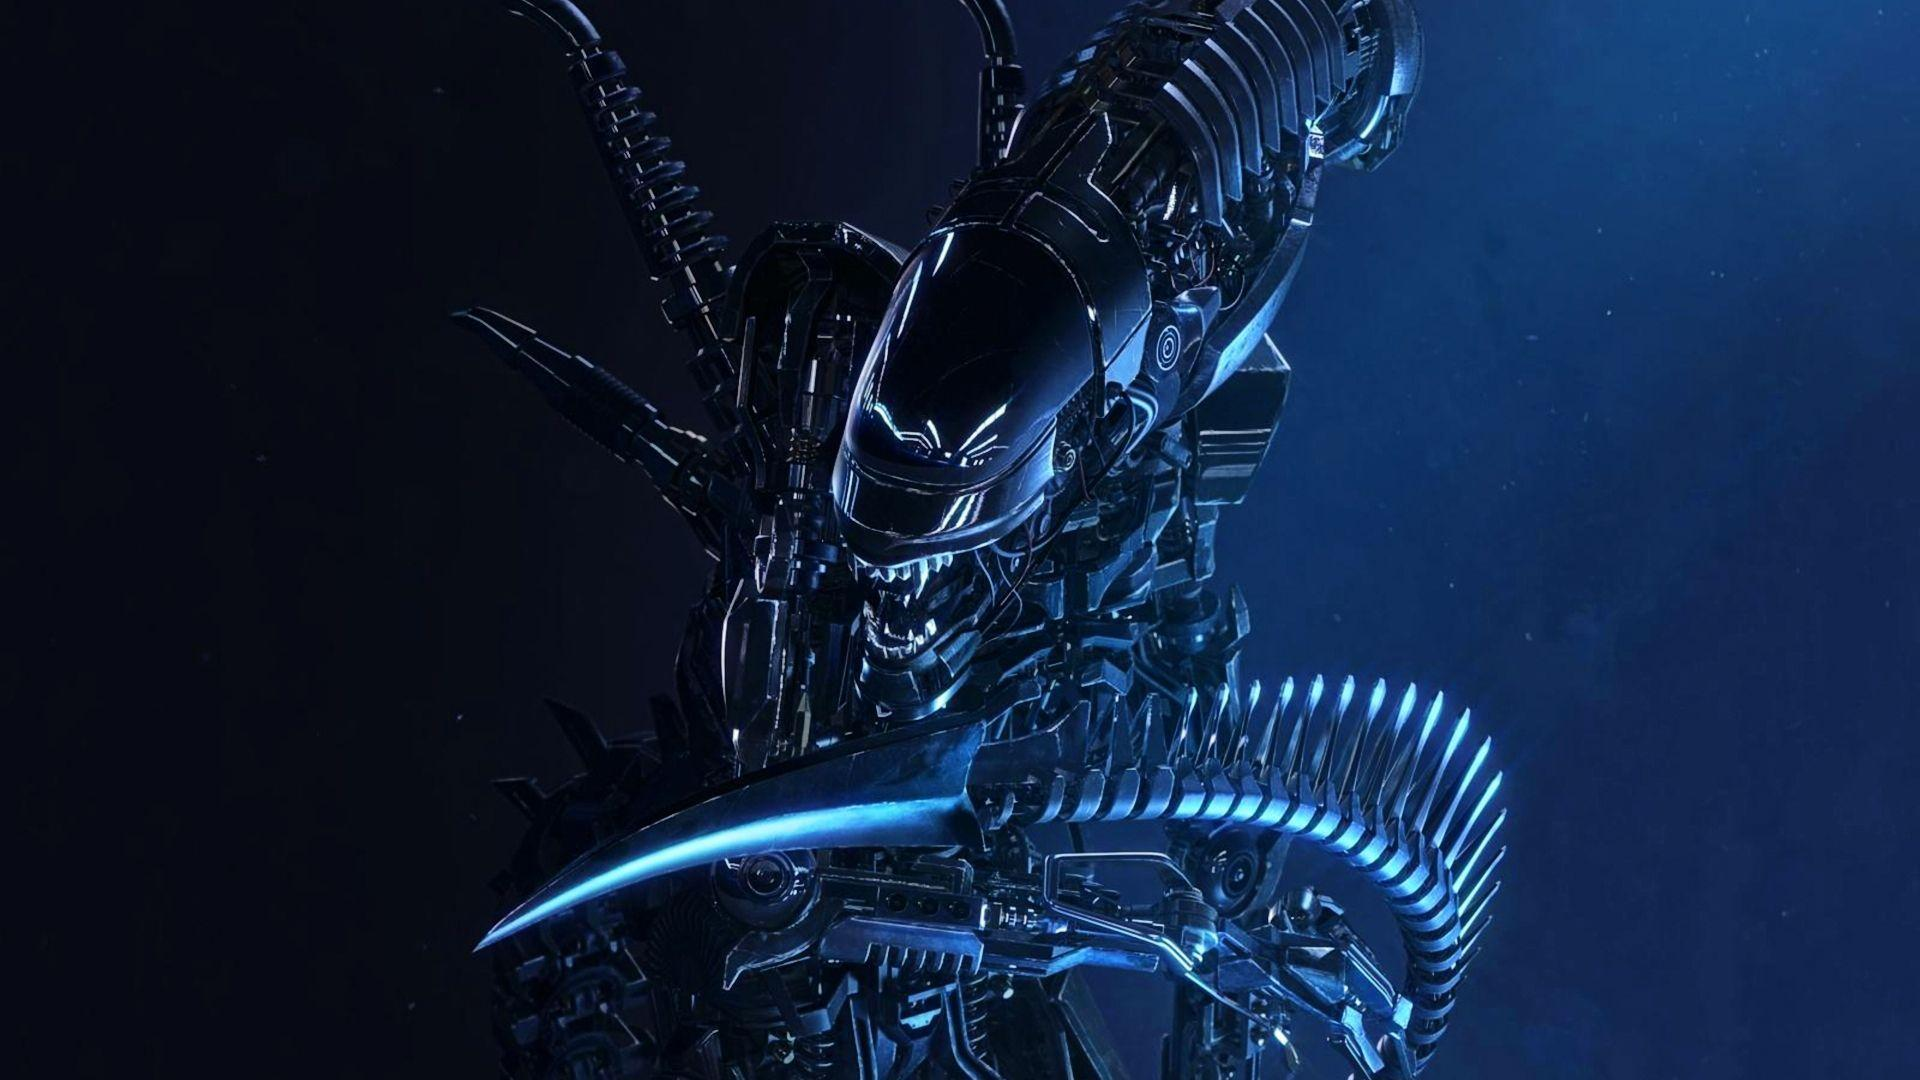 Alien Wallpapers 1920x1080